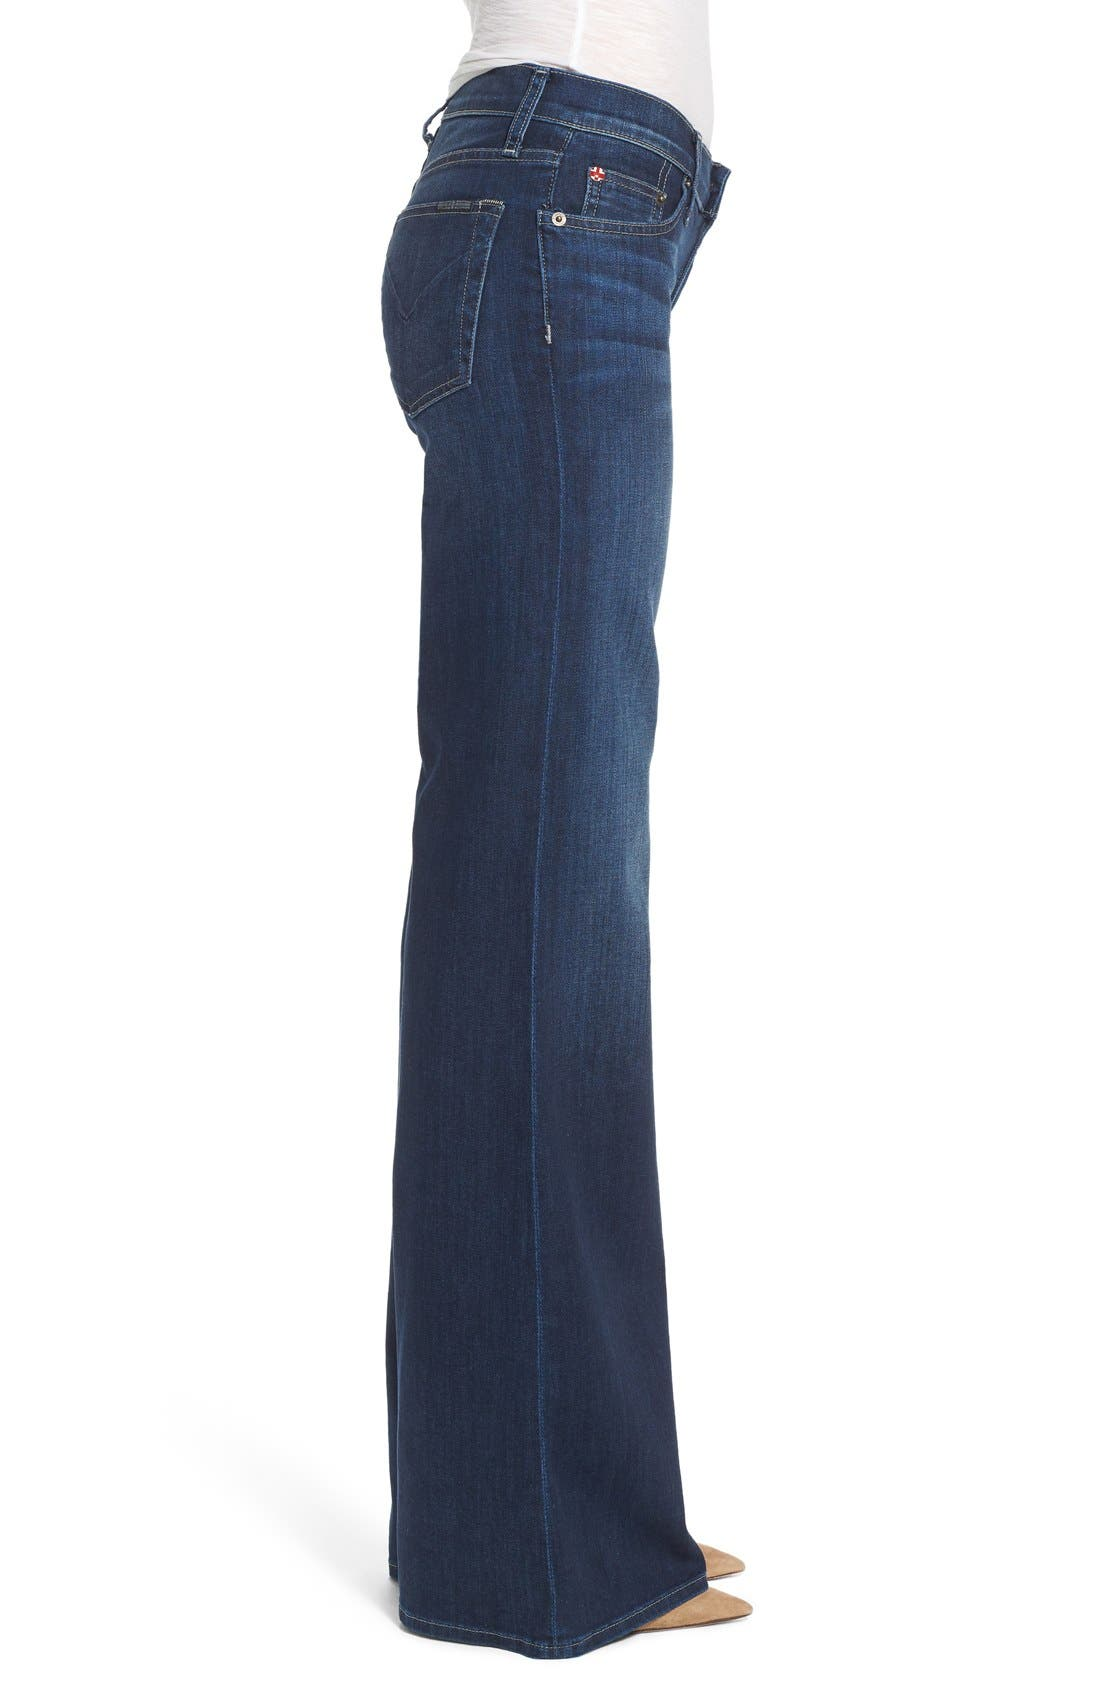 Alternate Image 3  - Hudson Jeans Piper Wide Leg Jeans (Thruway)